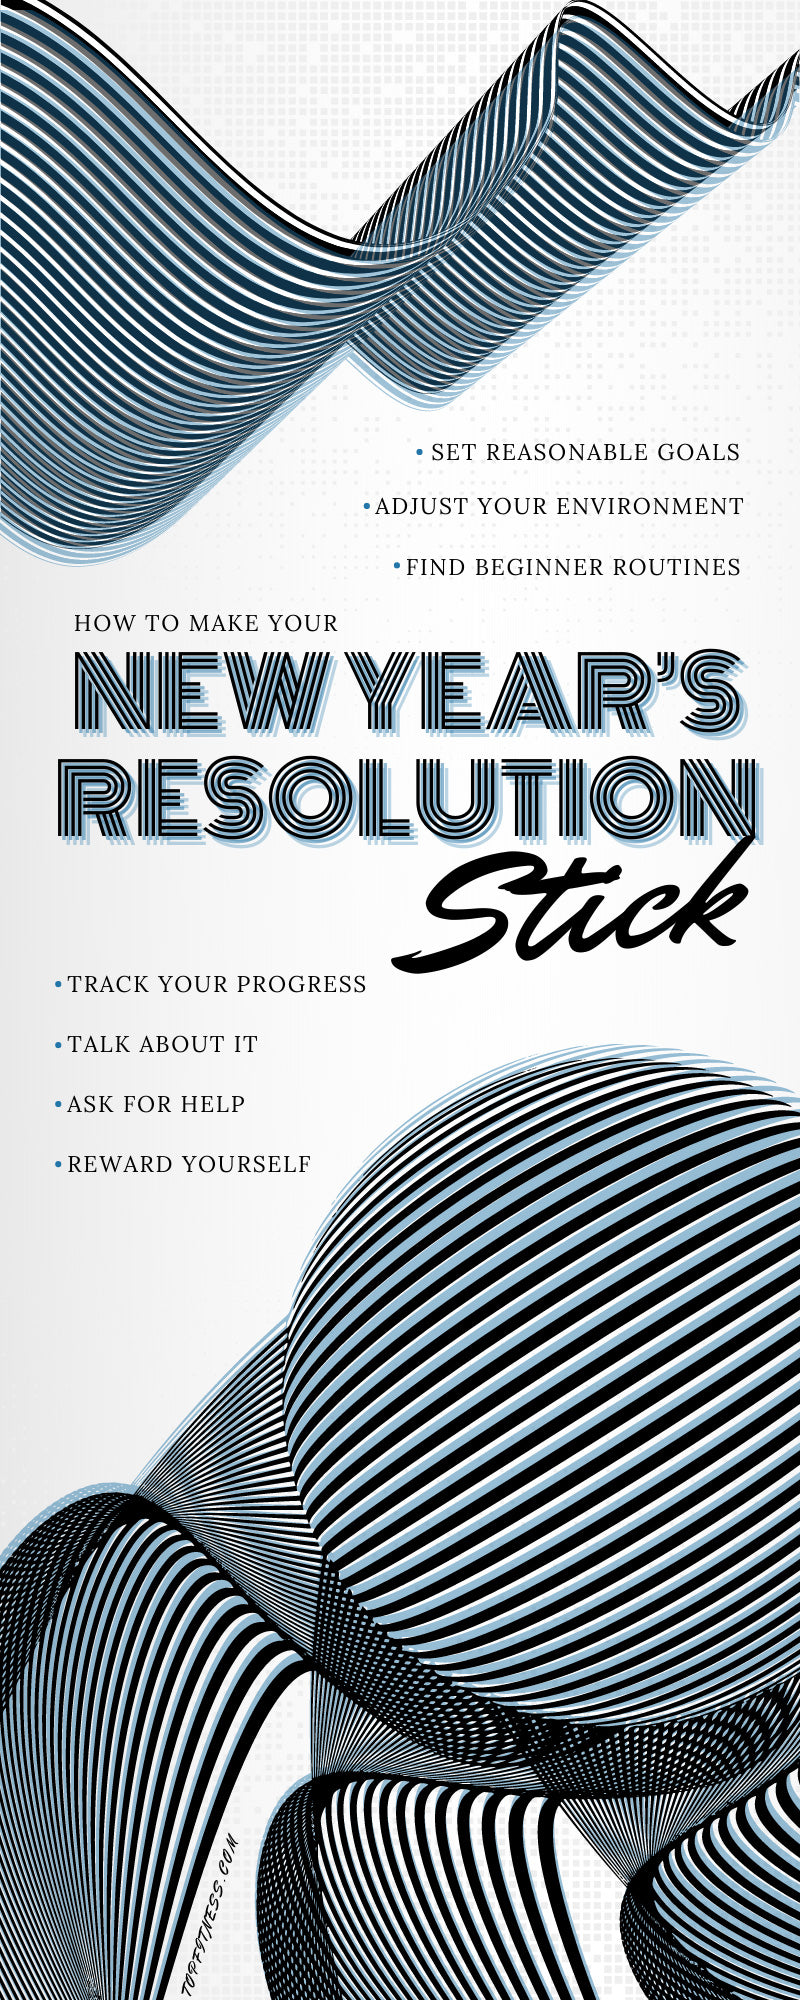 How To Make New Year's Resolution Stick